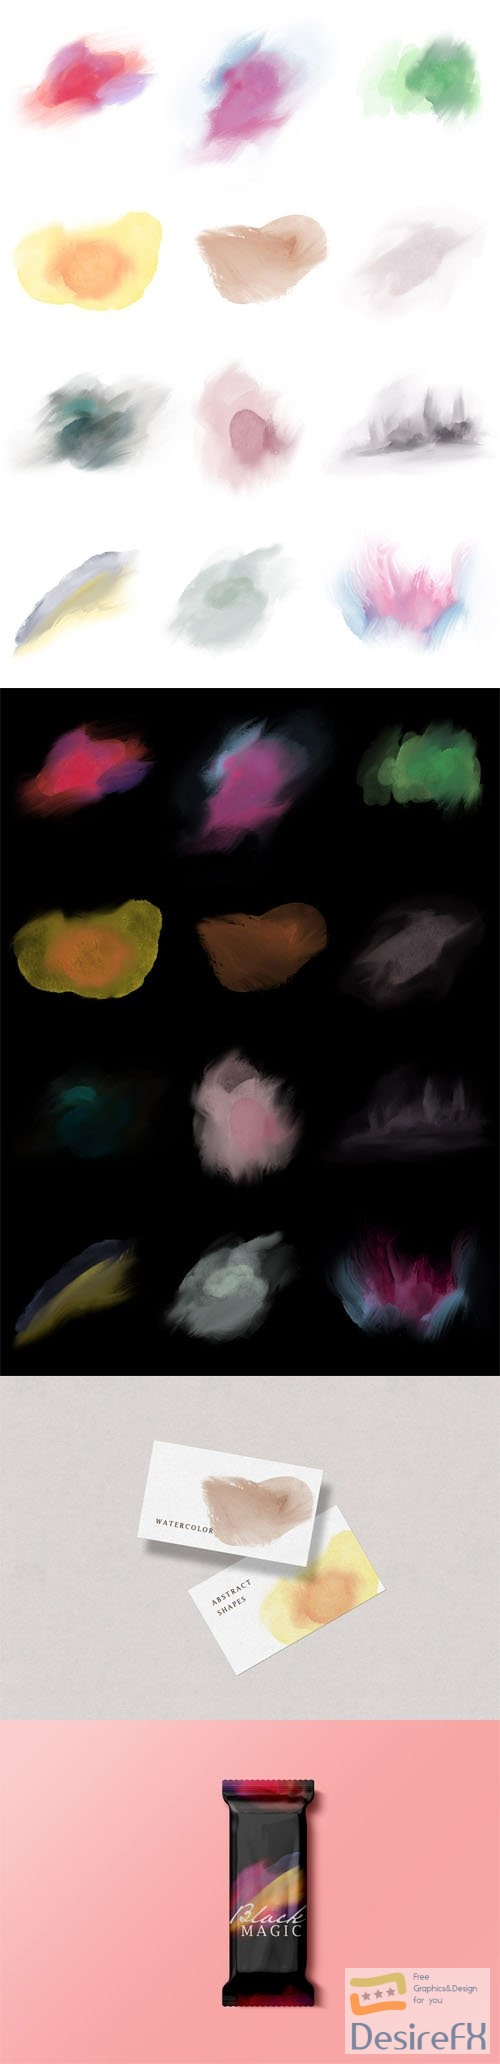 12 Hand-painted Watercolor Shapes Textures